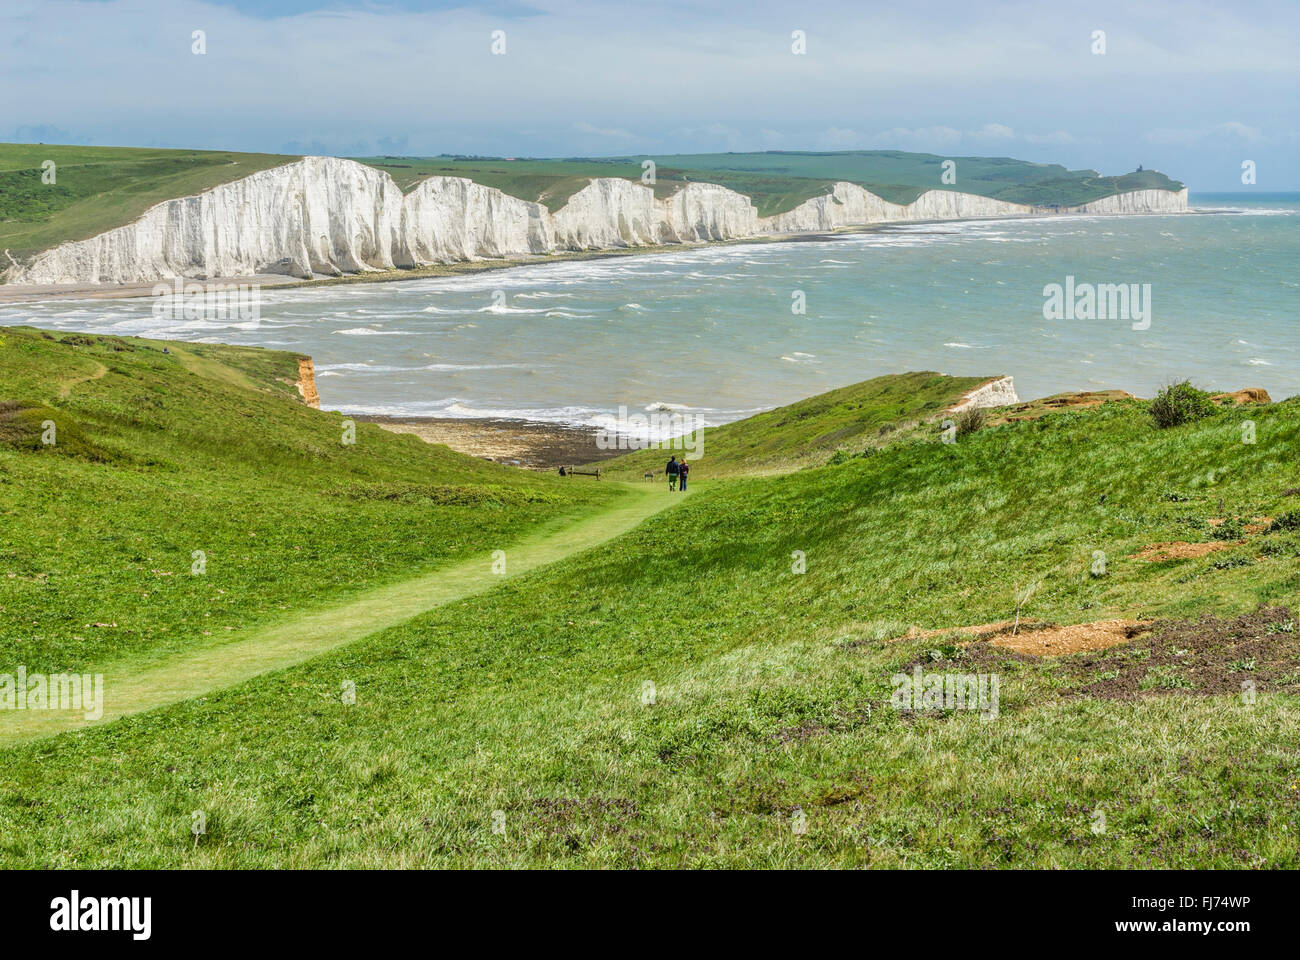 Sept Sœur Falaise près de la formation d'Eastbourne, East Sussex, Angleterre du Sud | Sept Sœurs Kreidefelsen, Photo Stock